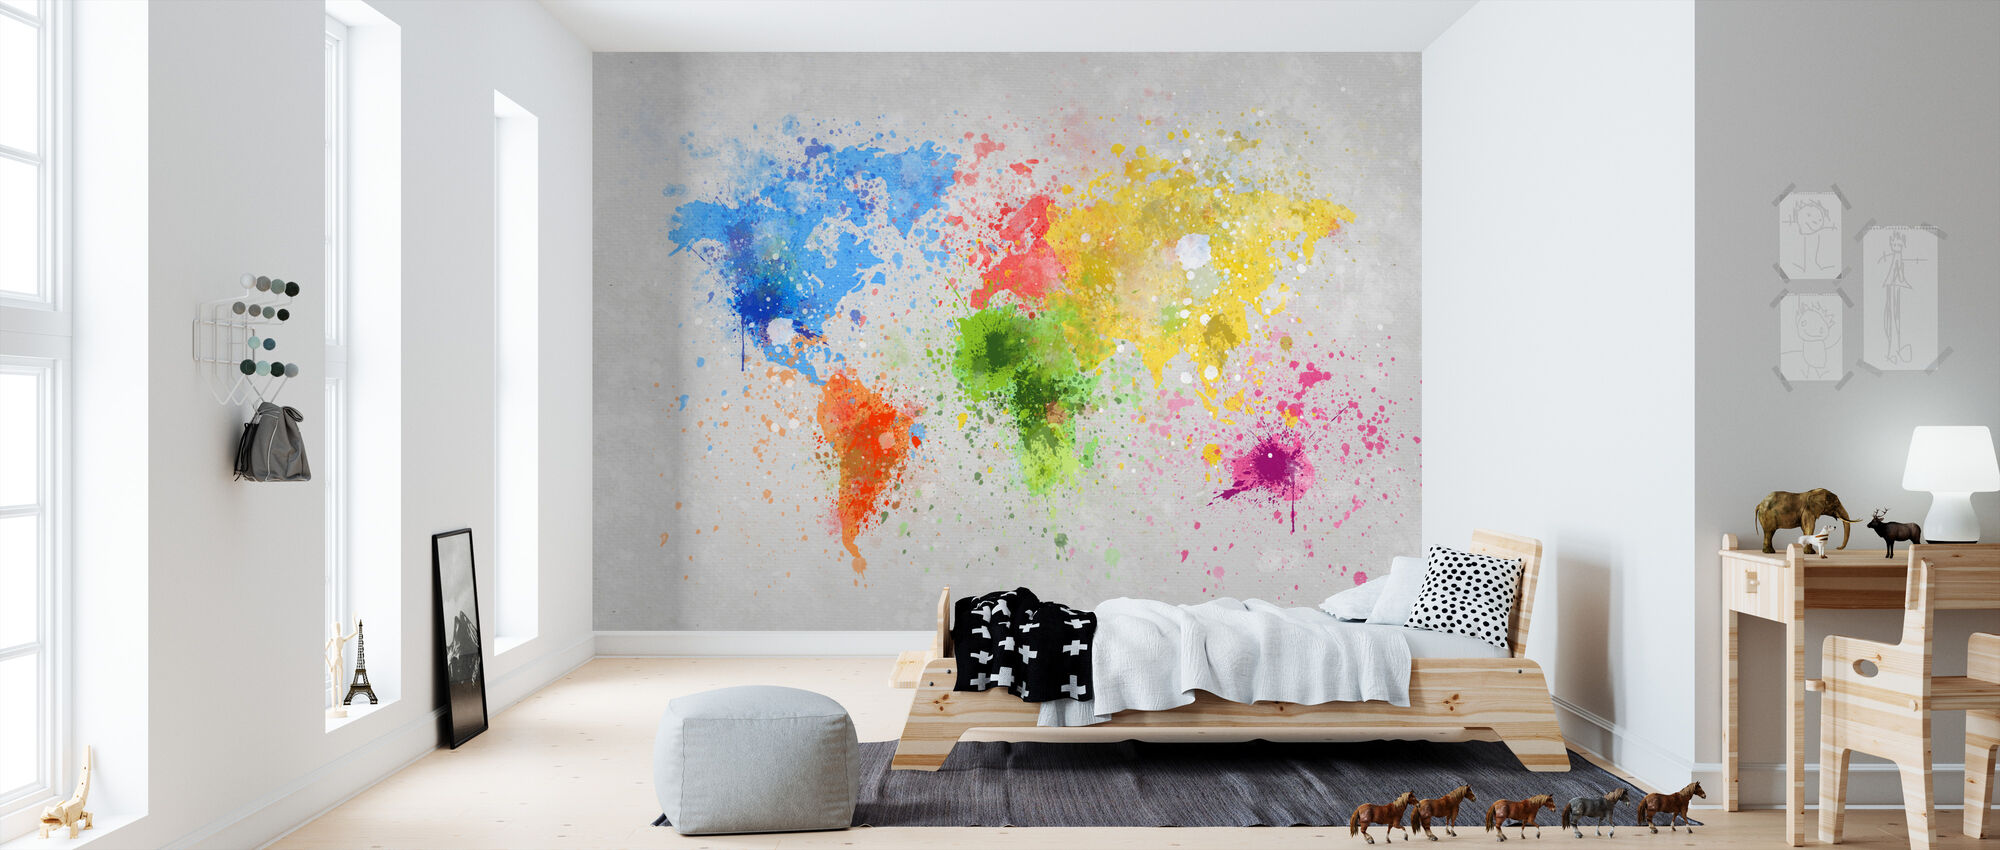 Colorful World - Wallpaper - Kids Room